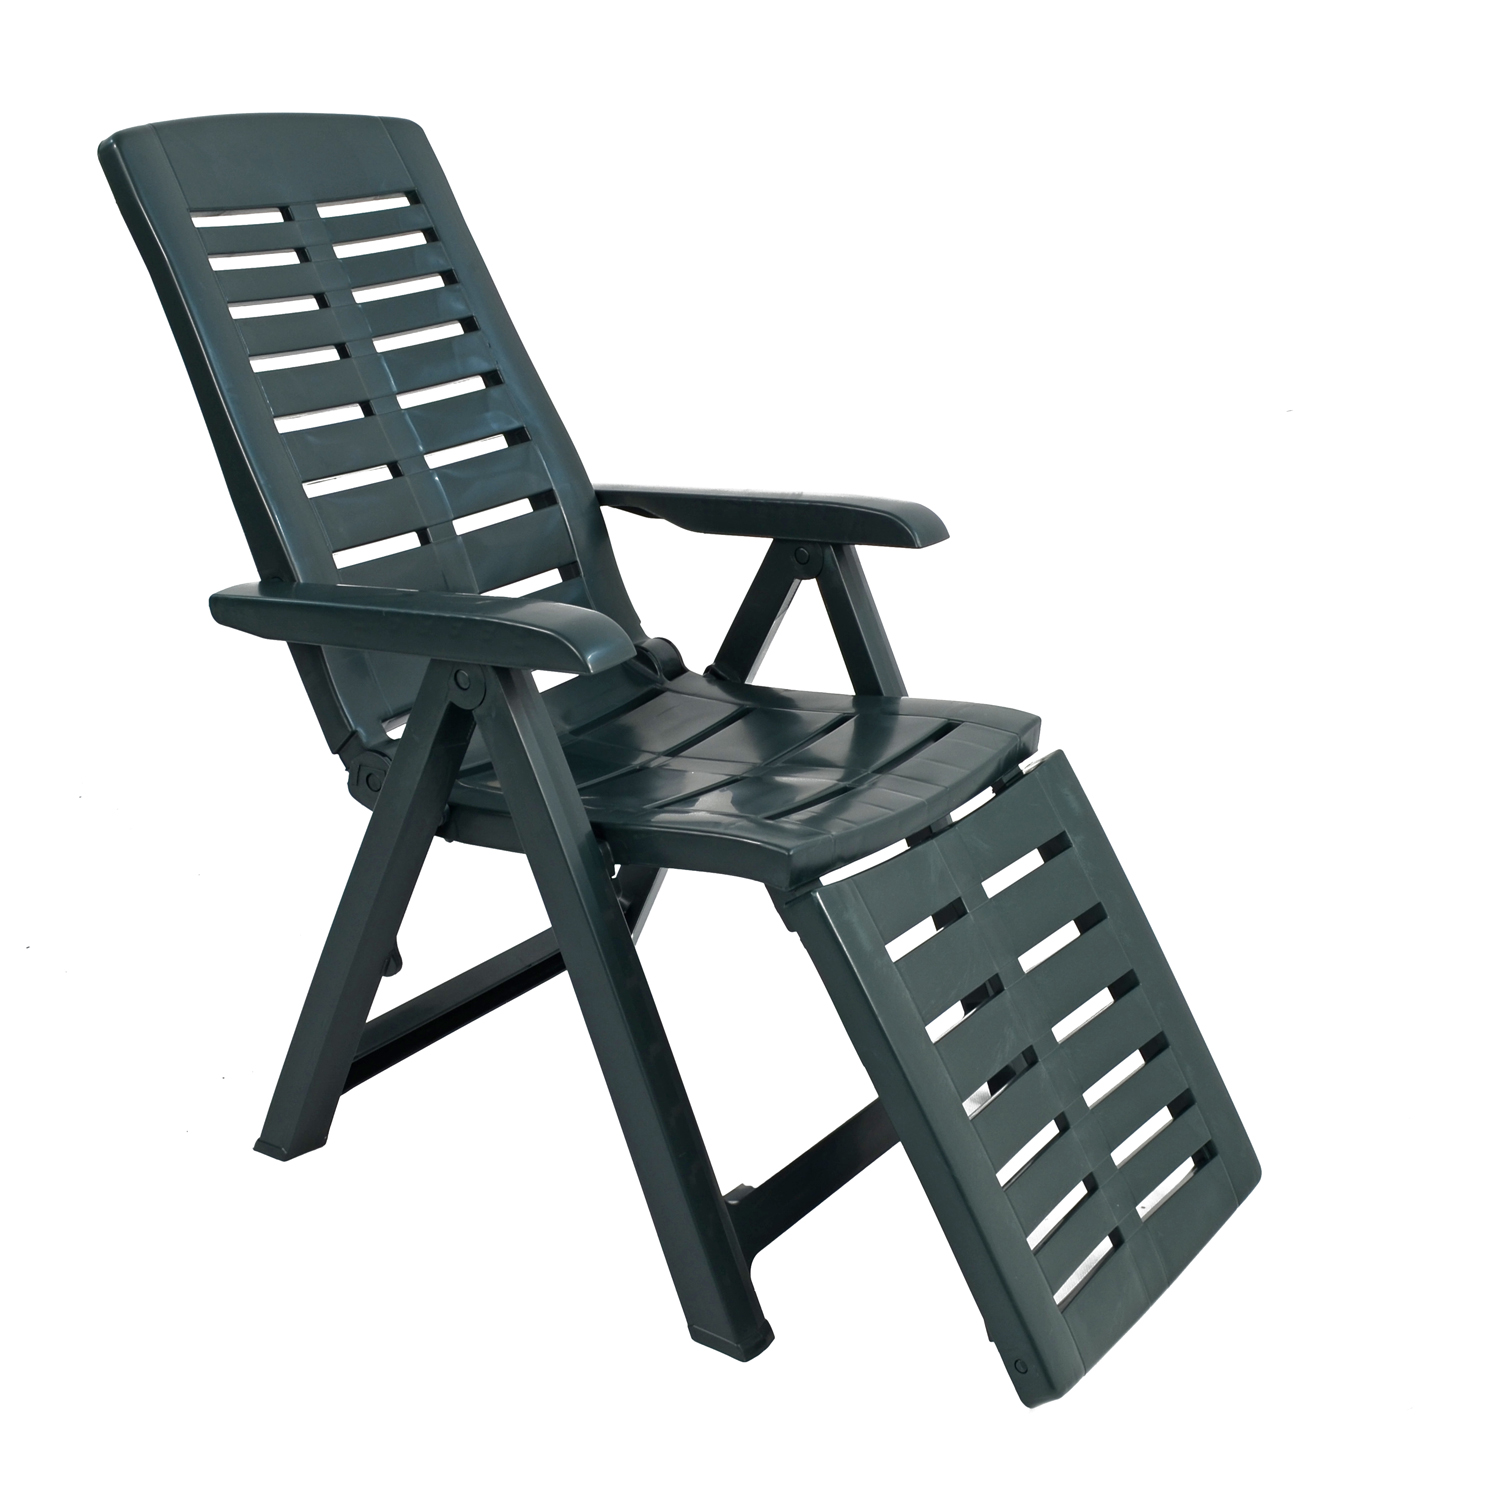 PESARO RECLINER CHAIR WITH FOOTREST GREEN FRONT RIGHT 2